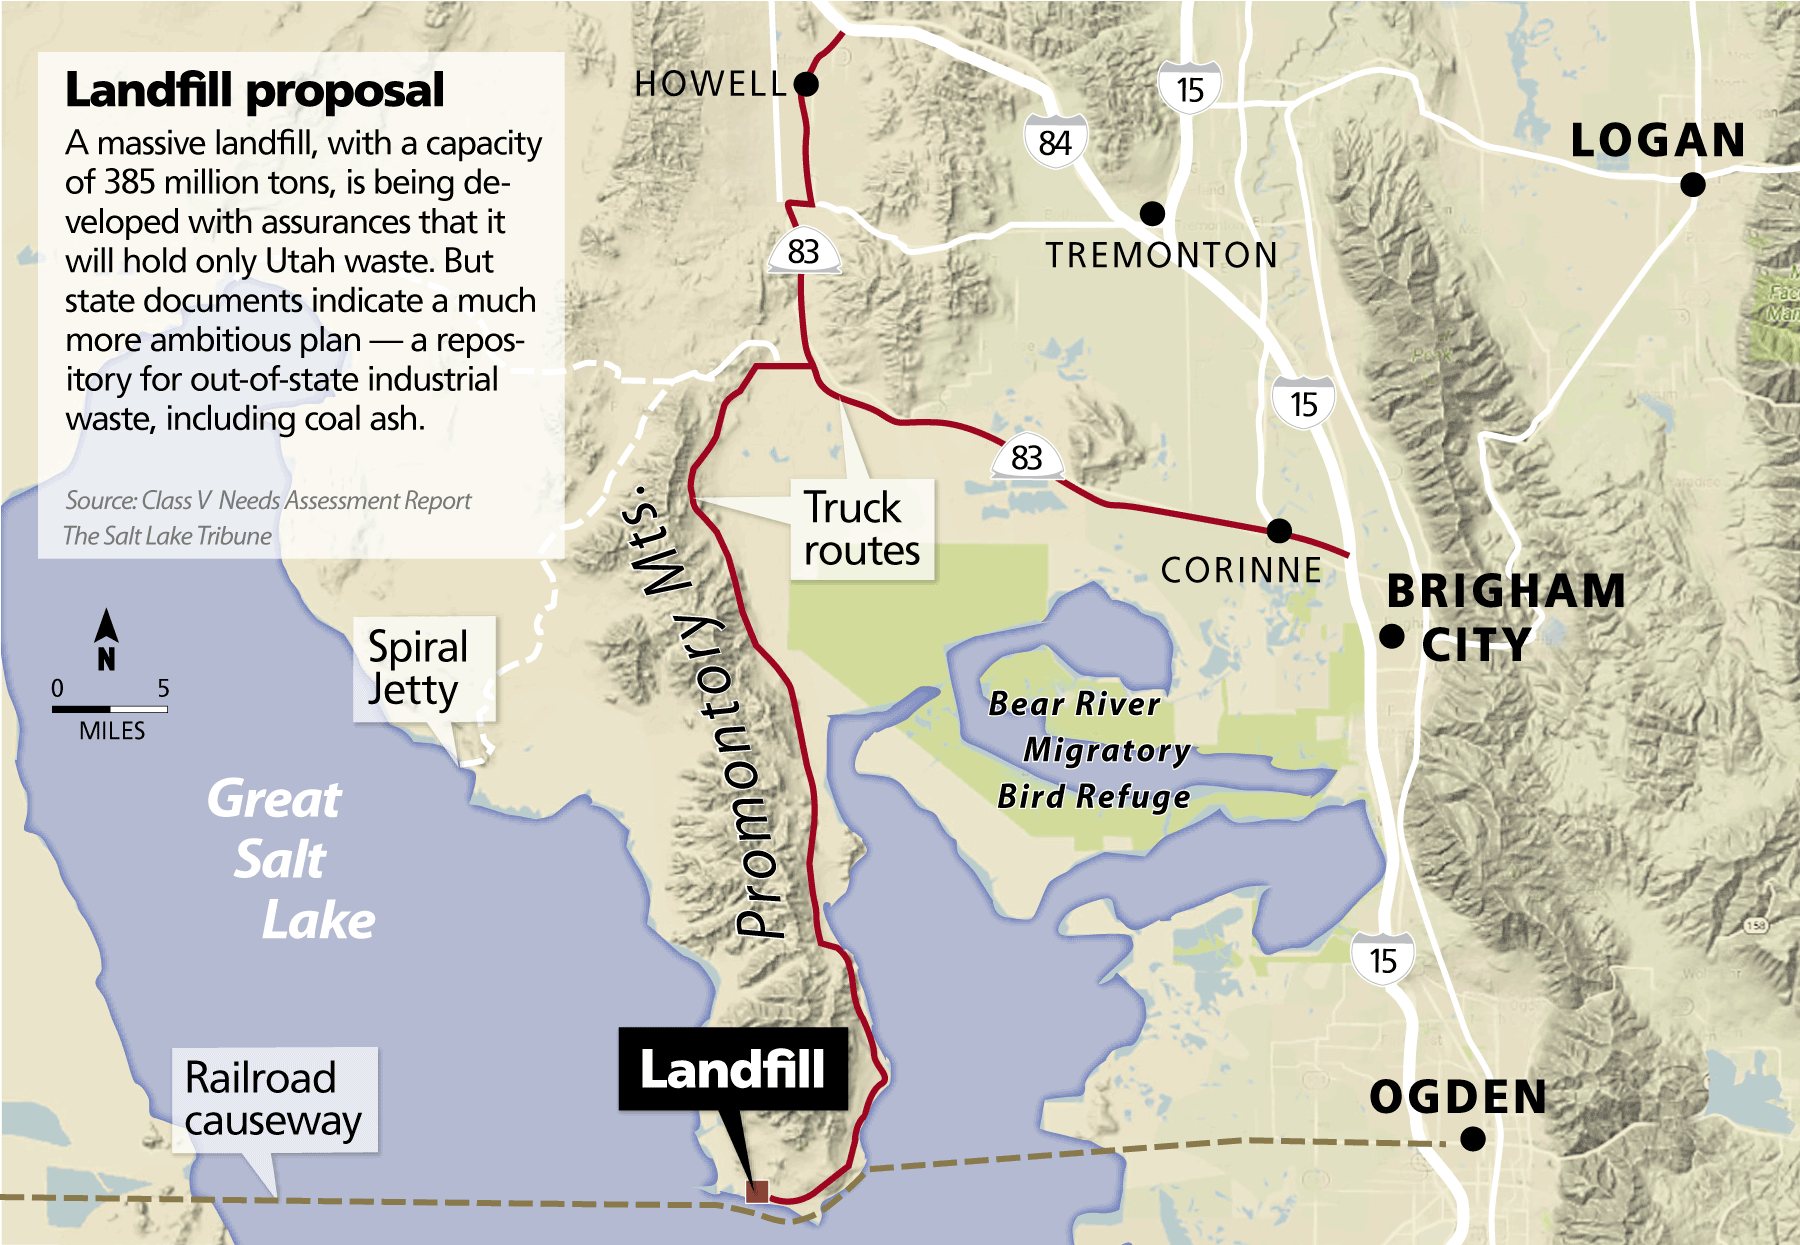 Landfill near the Great Salt Lake could become one of the nation's largest industrial waste repositories